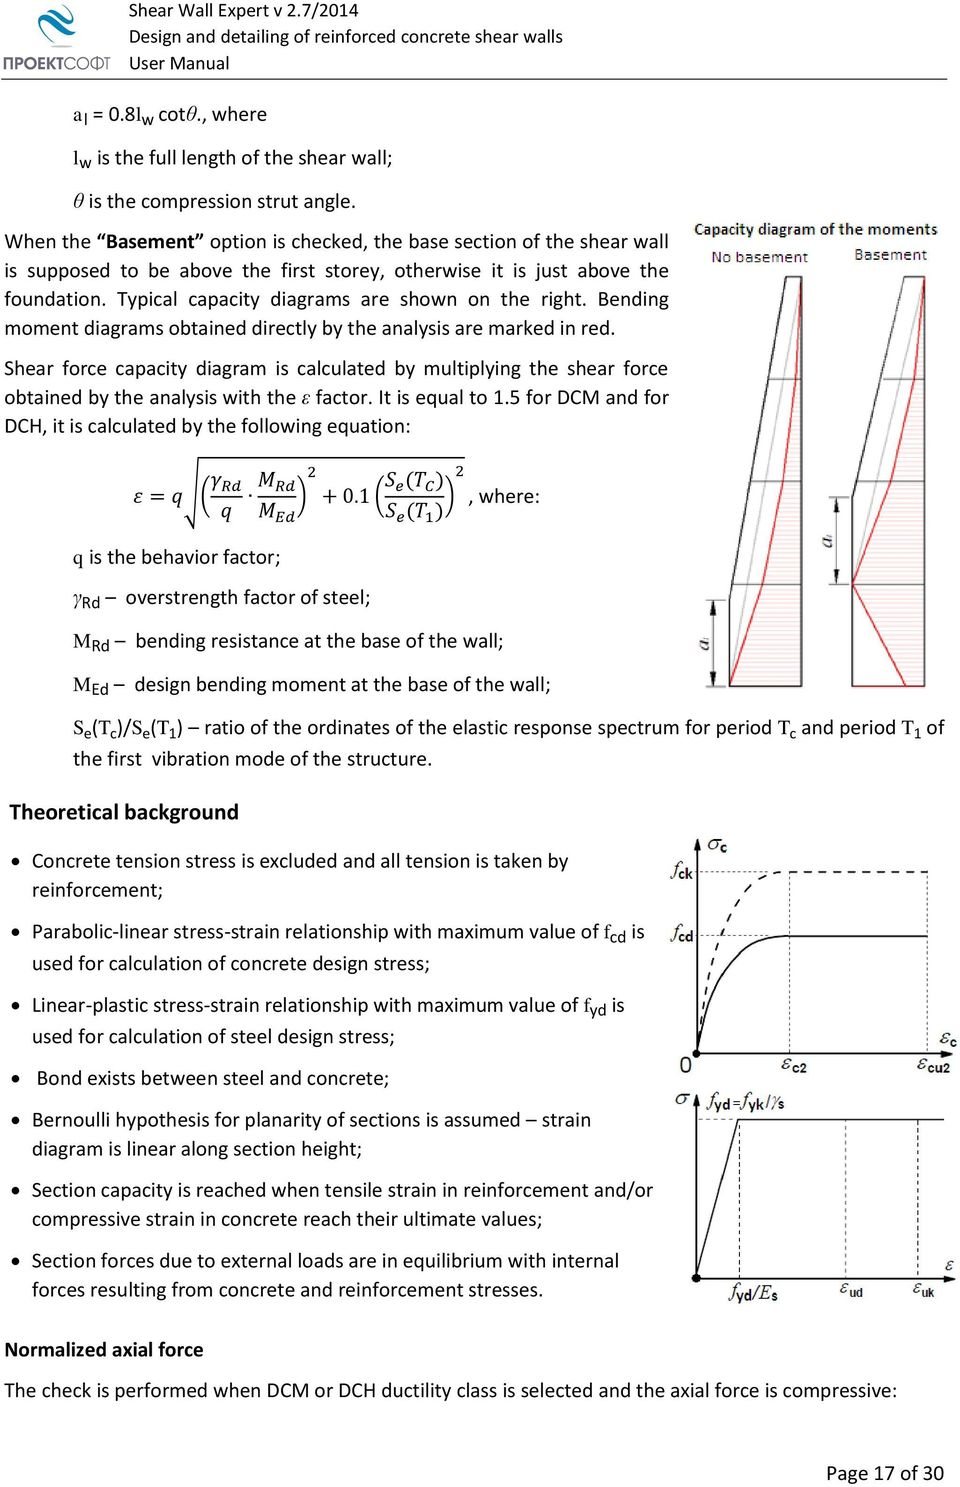 Shear Wall Expert User Manual Pdf For Accessibility Draw Force And Bending Moment Diagram Typical Capacity Diagrams Are Shown On The Right Obtained Directly By